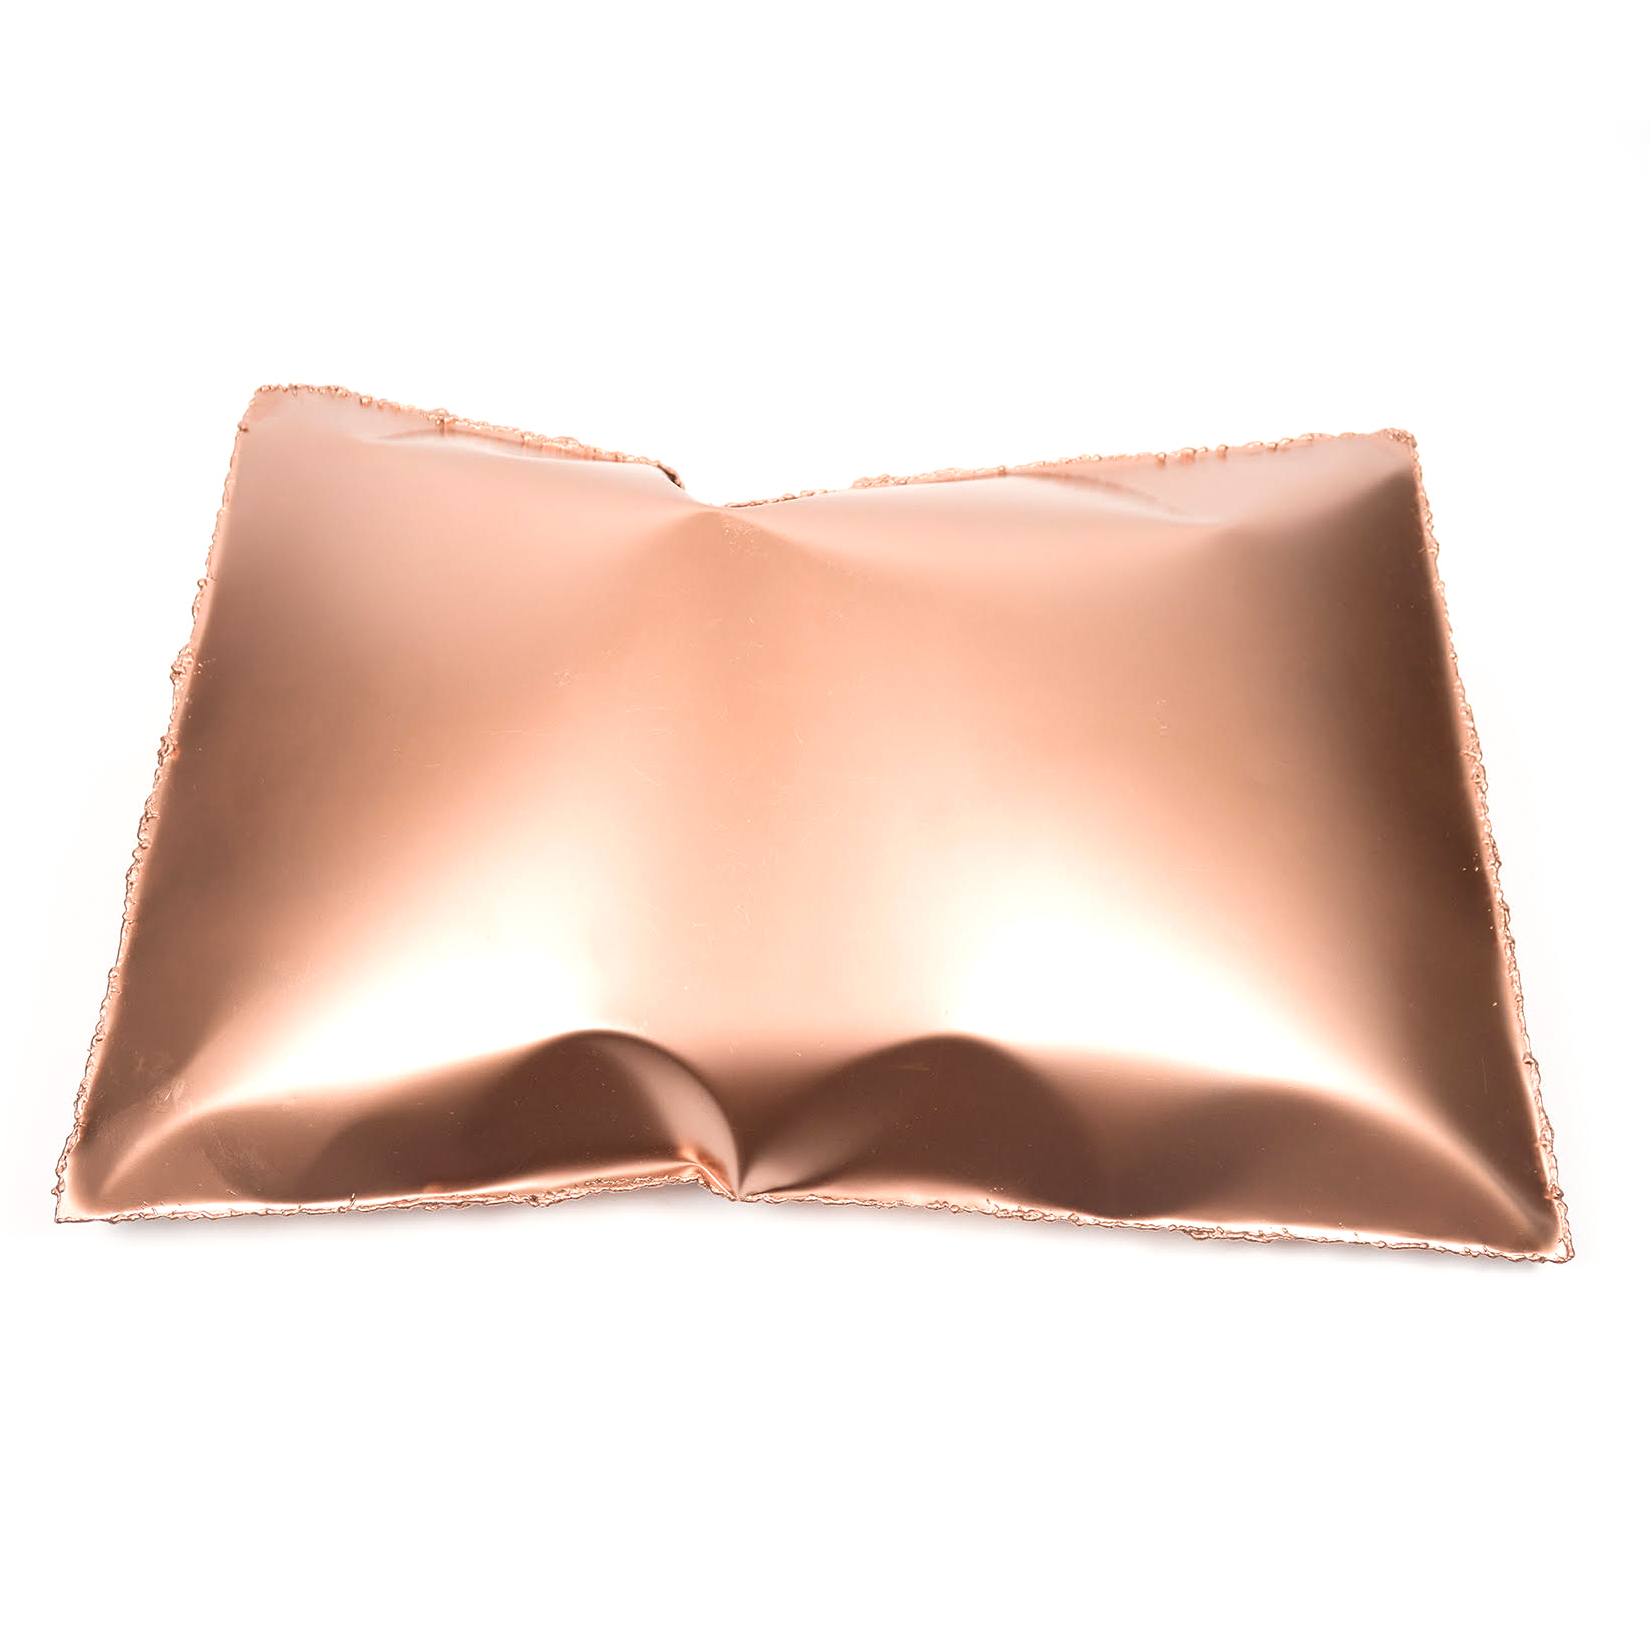 The Copper Pillow